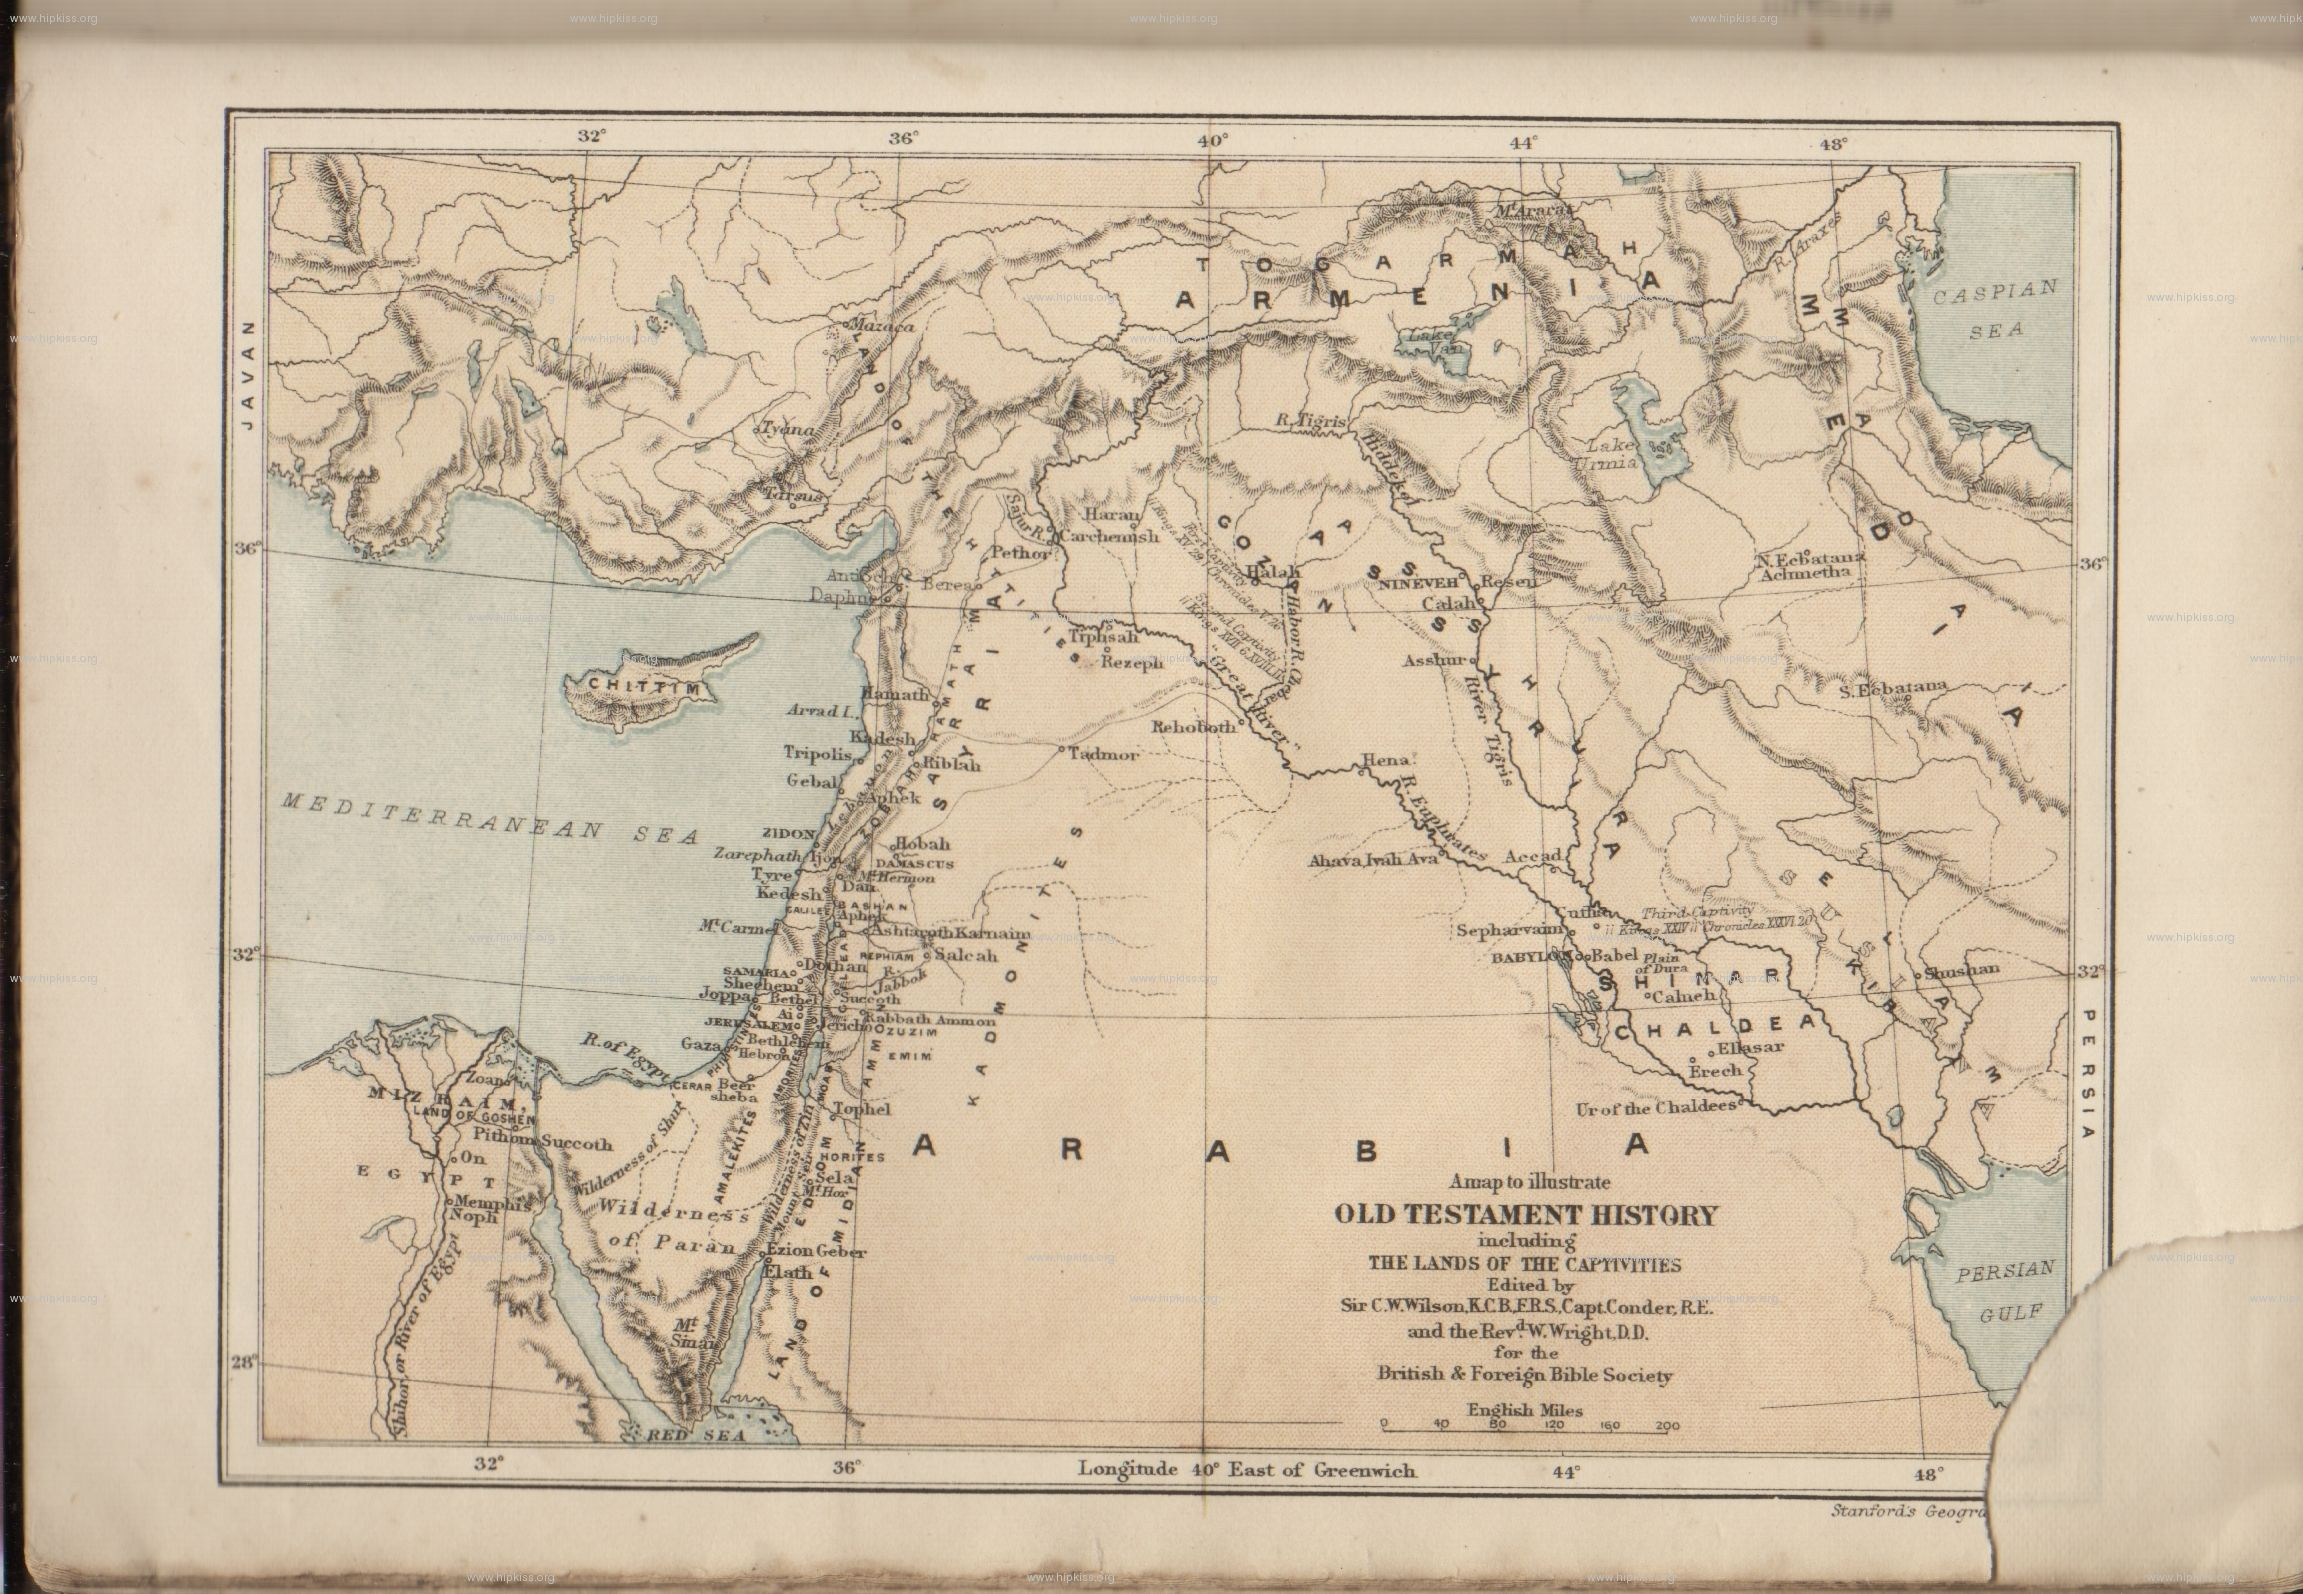 Old Testament Maps Of The Bible